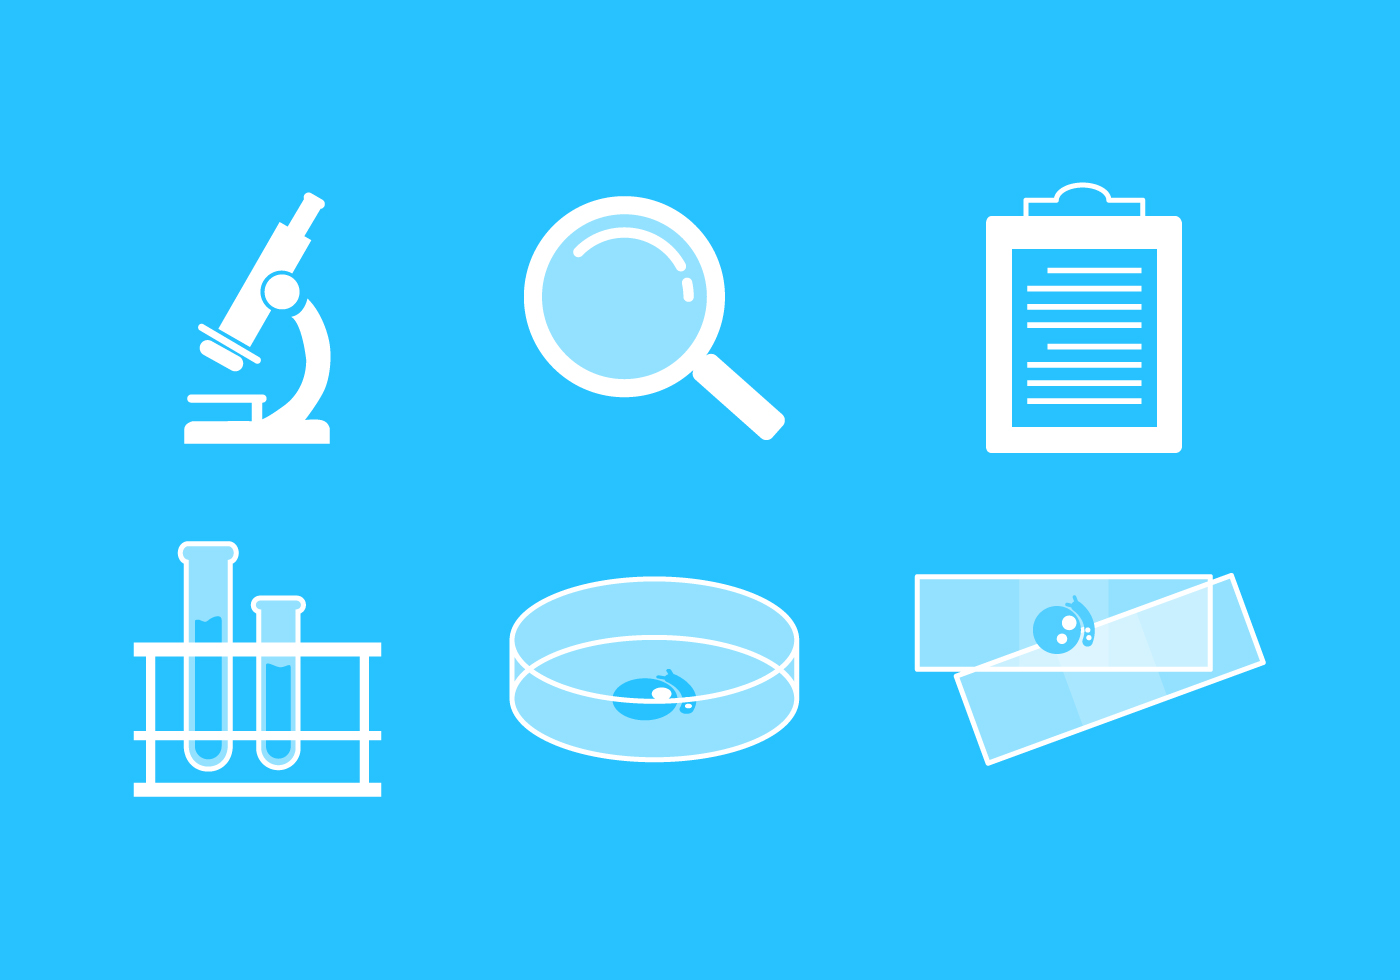 Vector Labs Icon Set Download Free Vector Art Stock